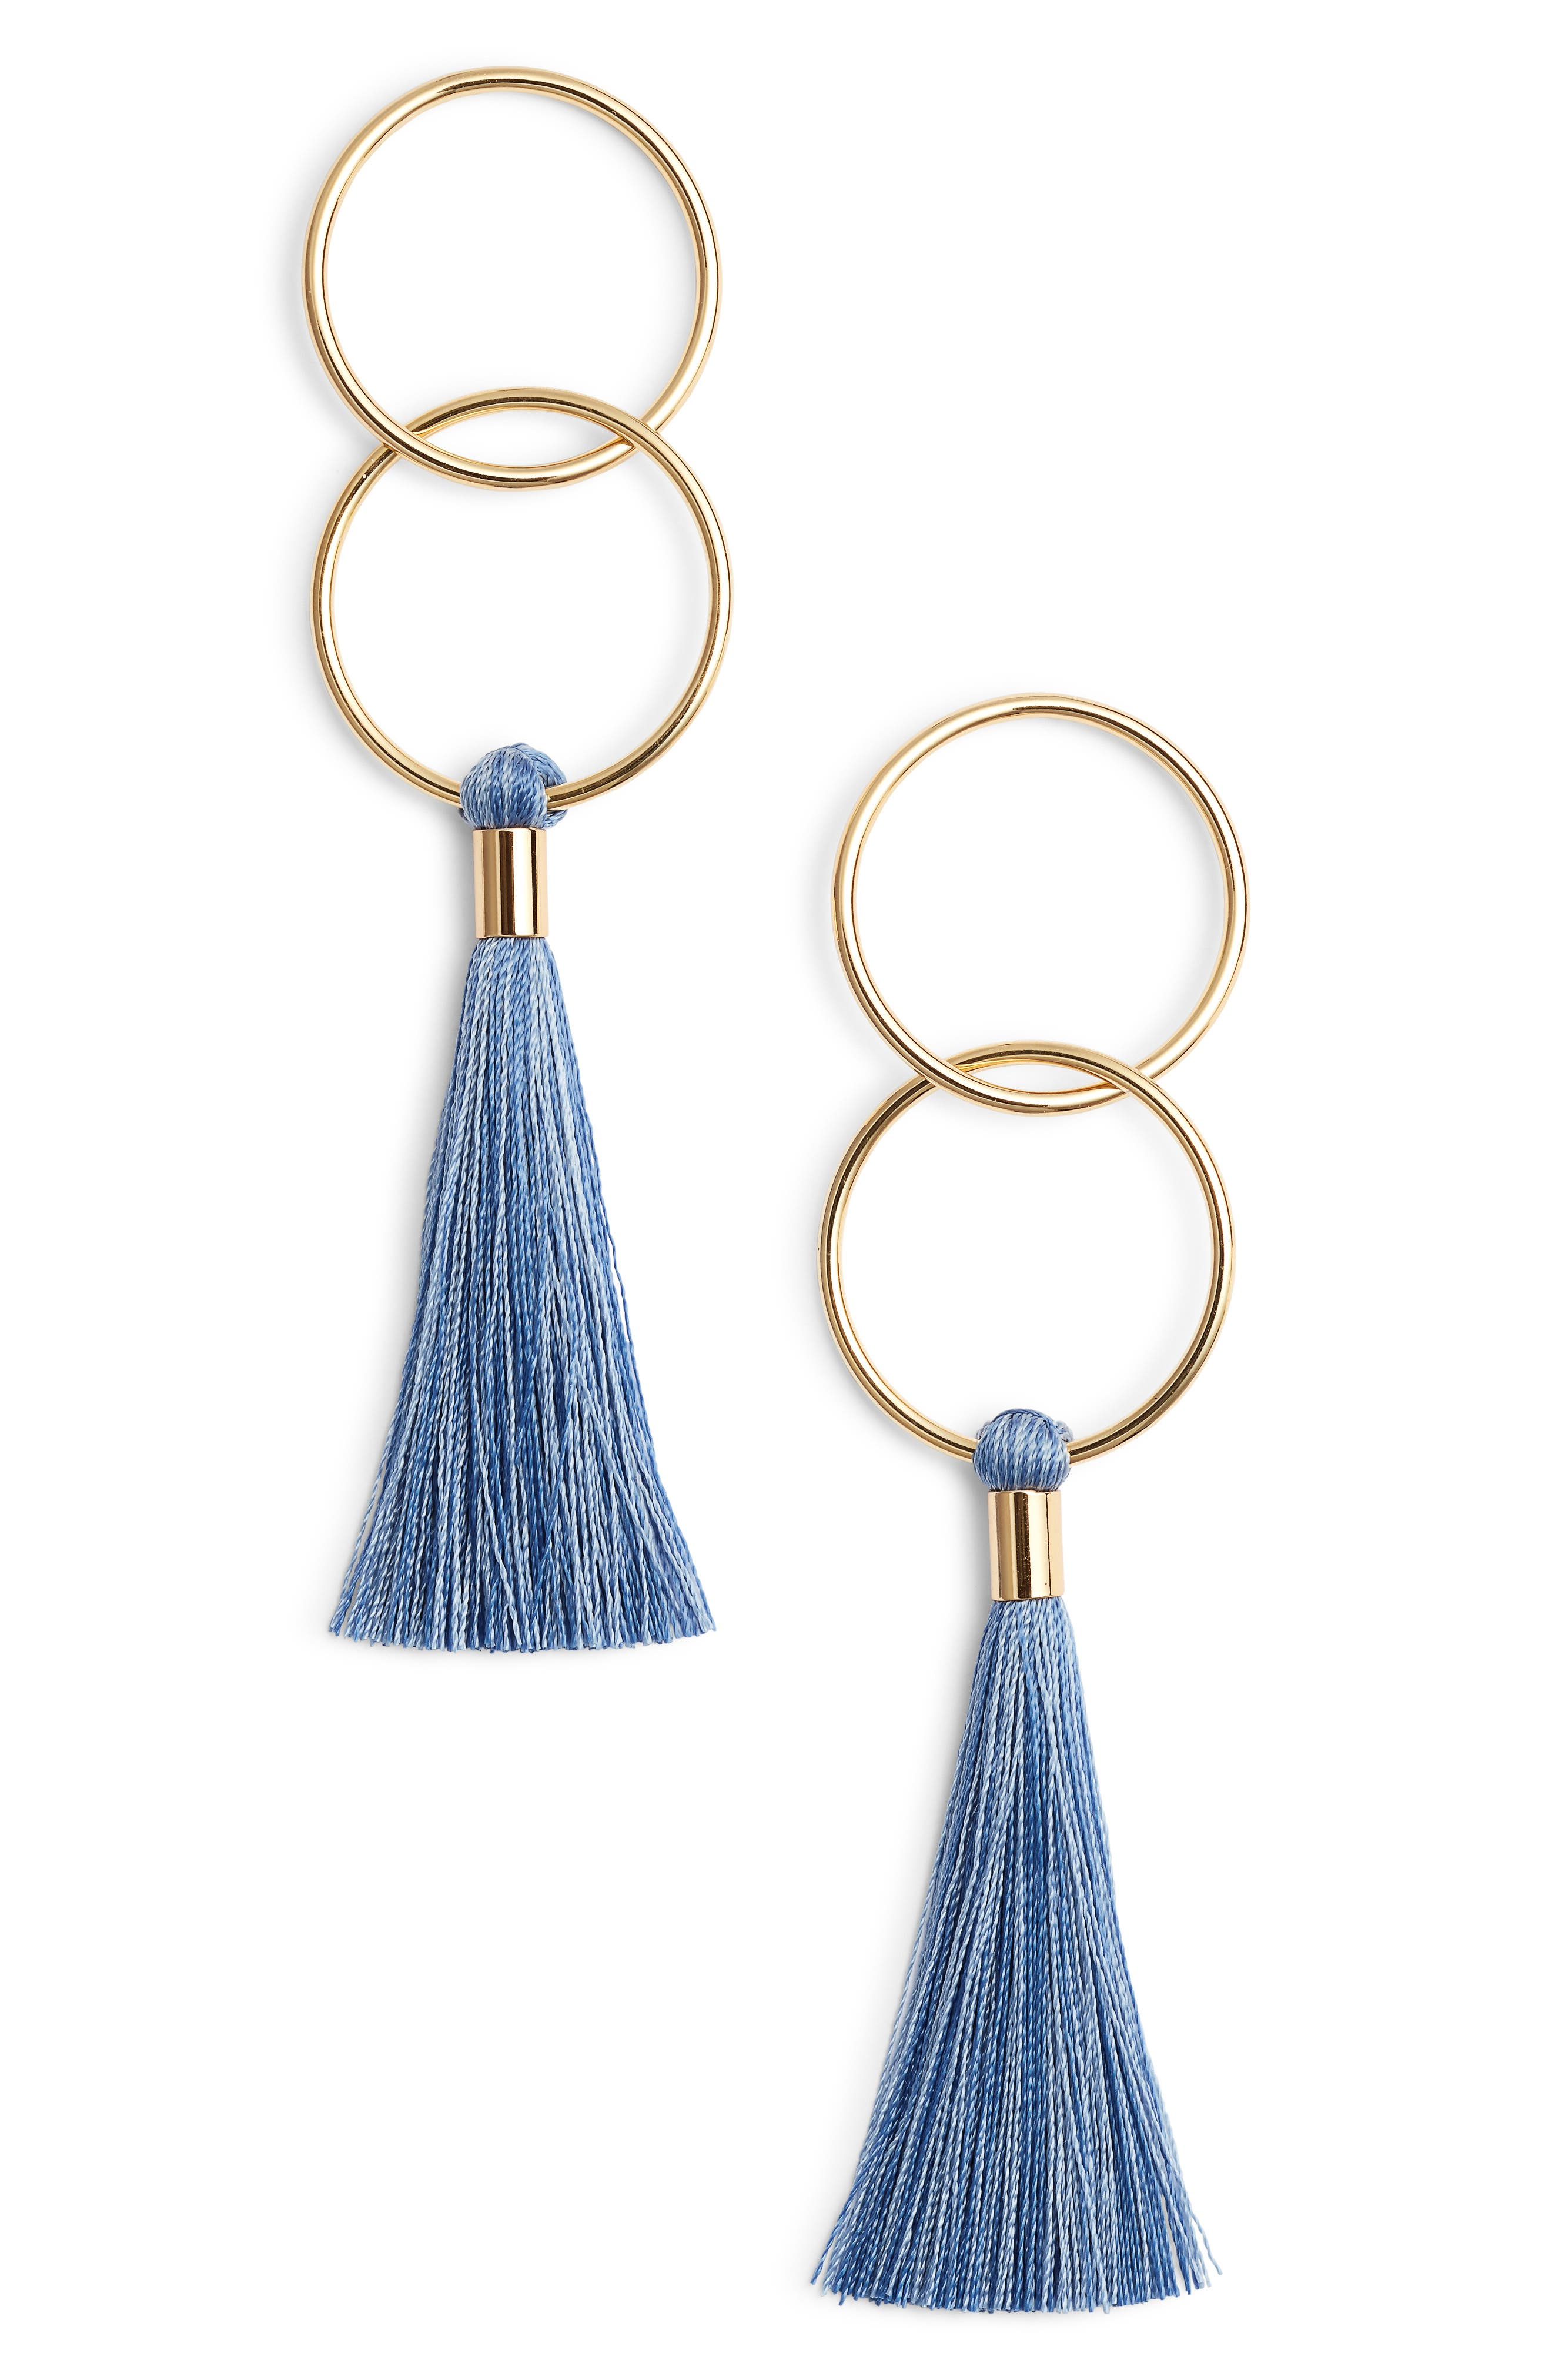 Carmen Tassel Earrings,                             Main thumbnail 1, color,                             Mixed Powder Blue/ Gold